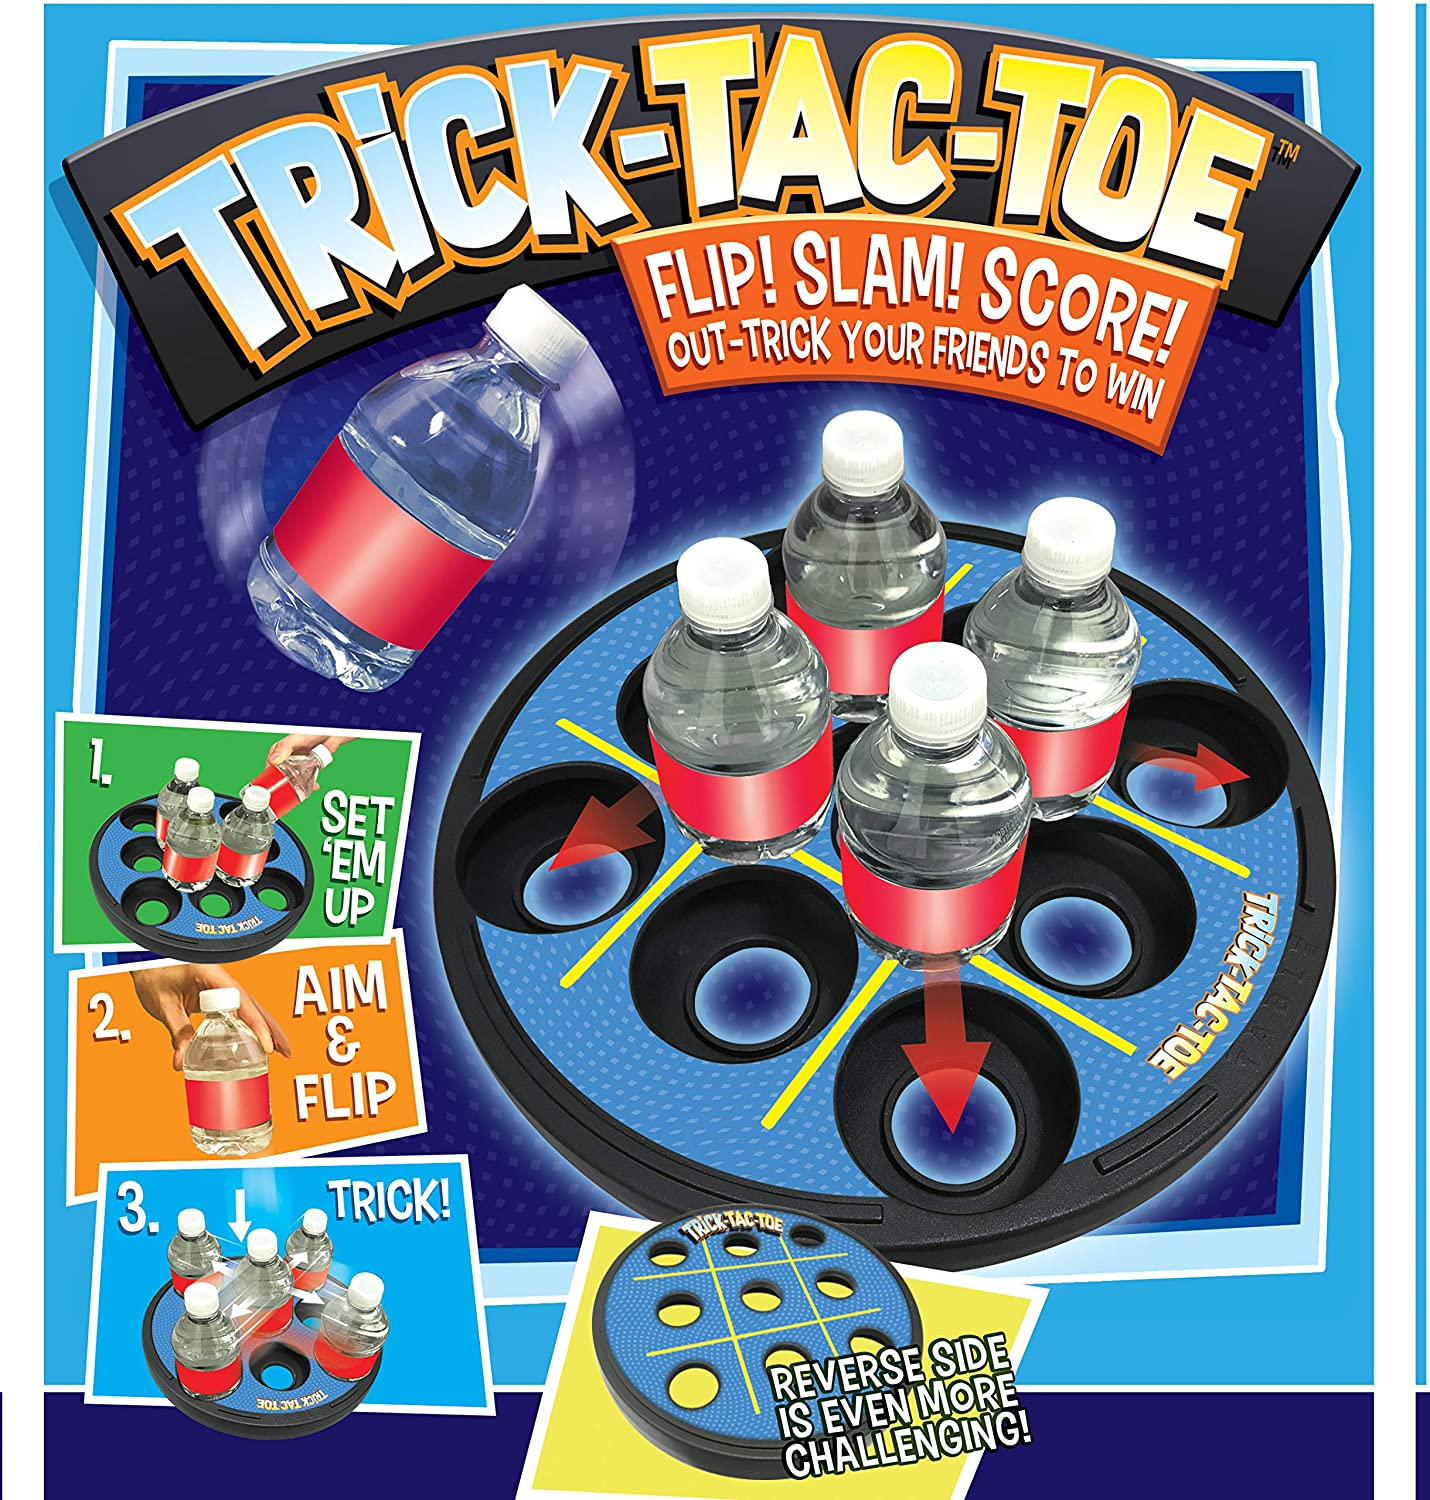 Trick-Tac-Toe Bottle Flipping Game for Indoors, Tailgate or Backyard by Cortex Toys